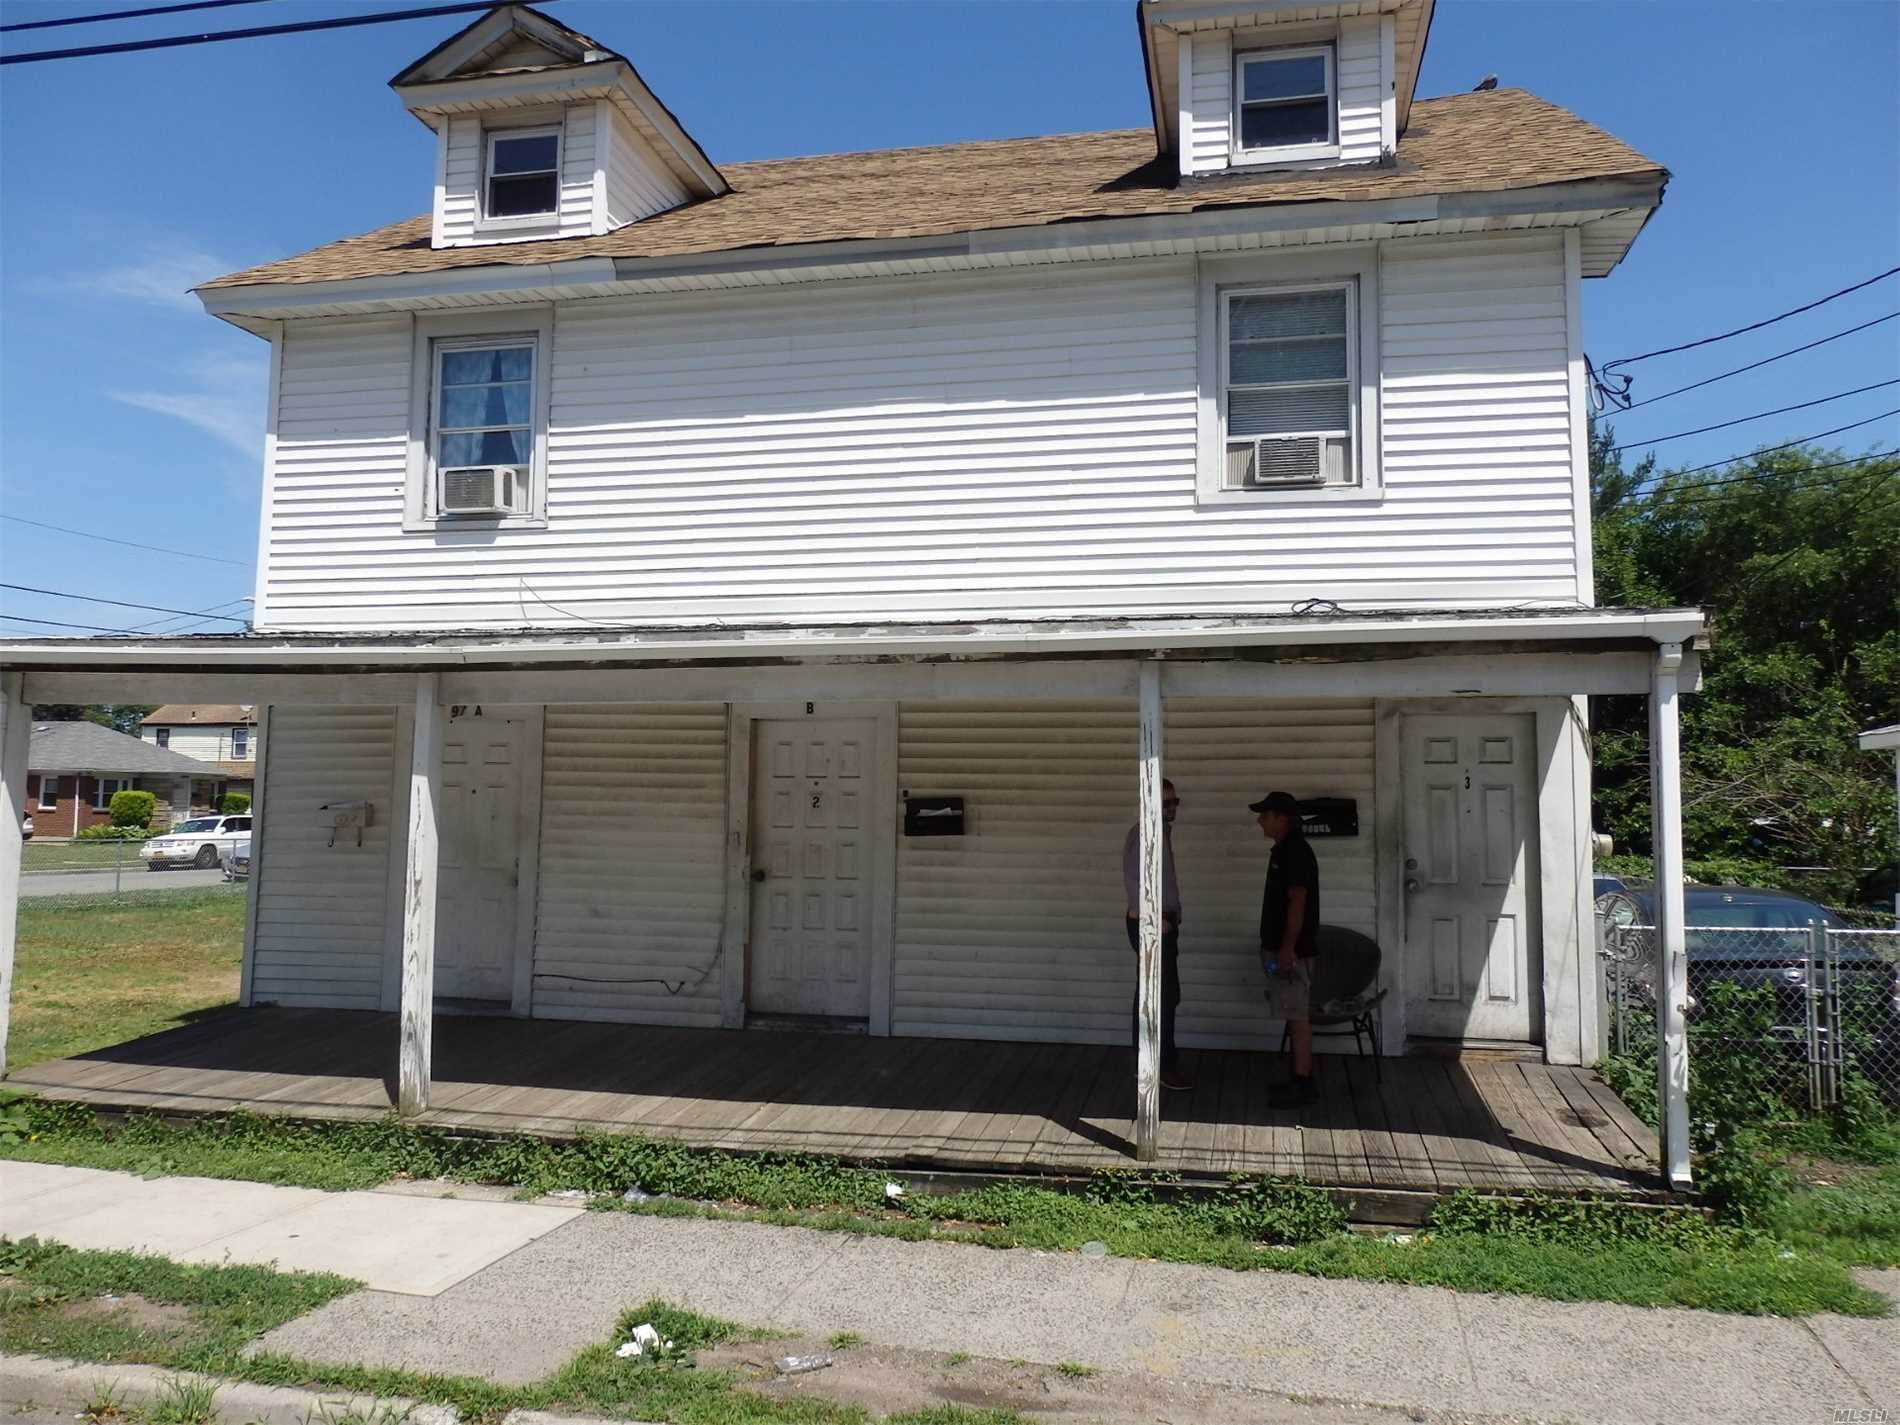 Investors And All Cash Buyers Only. Amazing Income Opportunity. Gross Rent Roll Over $60, 000. New Boiler, Hot Water Heater, Electrical, Siding And Roof. Being Sold Occupied With All Tenants In Place.Not An Reo, Not A Short Sale. Can Be Sold In Conjunction With 497 Fulton, 501 Fulton And 497 Fulton.